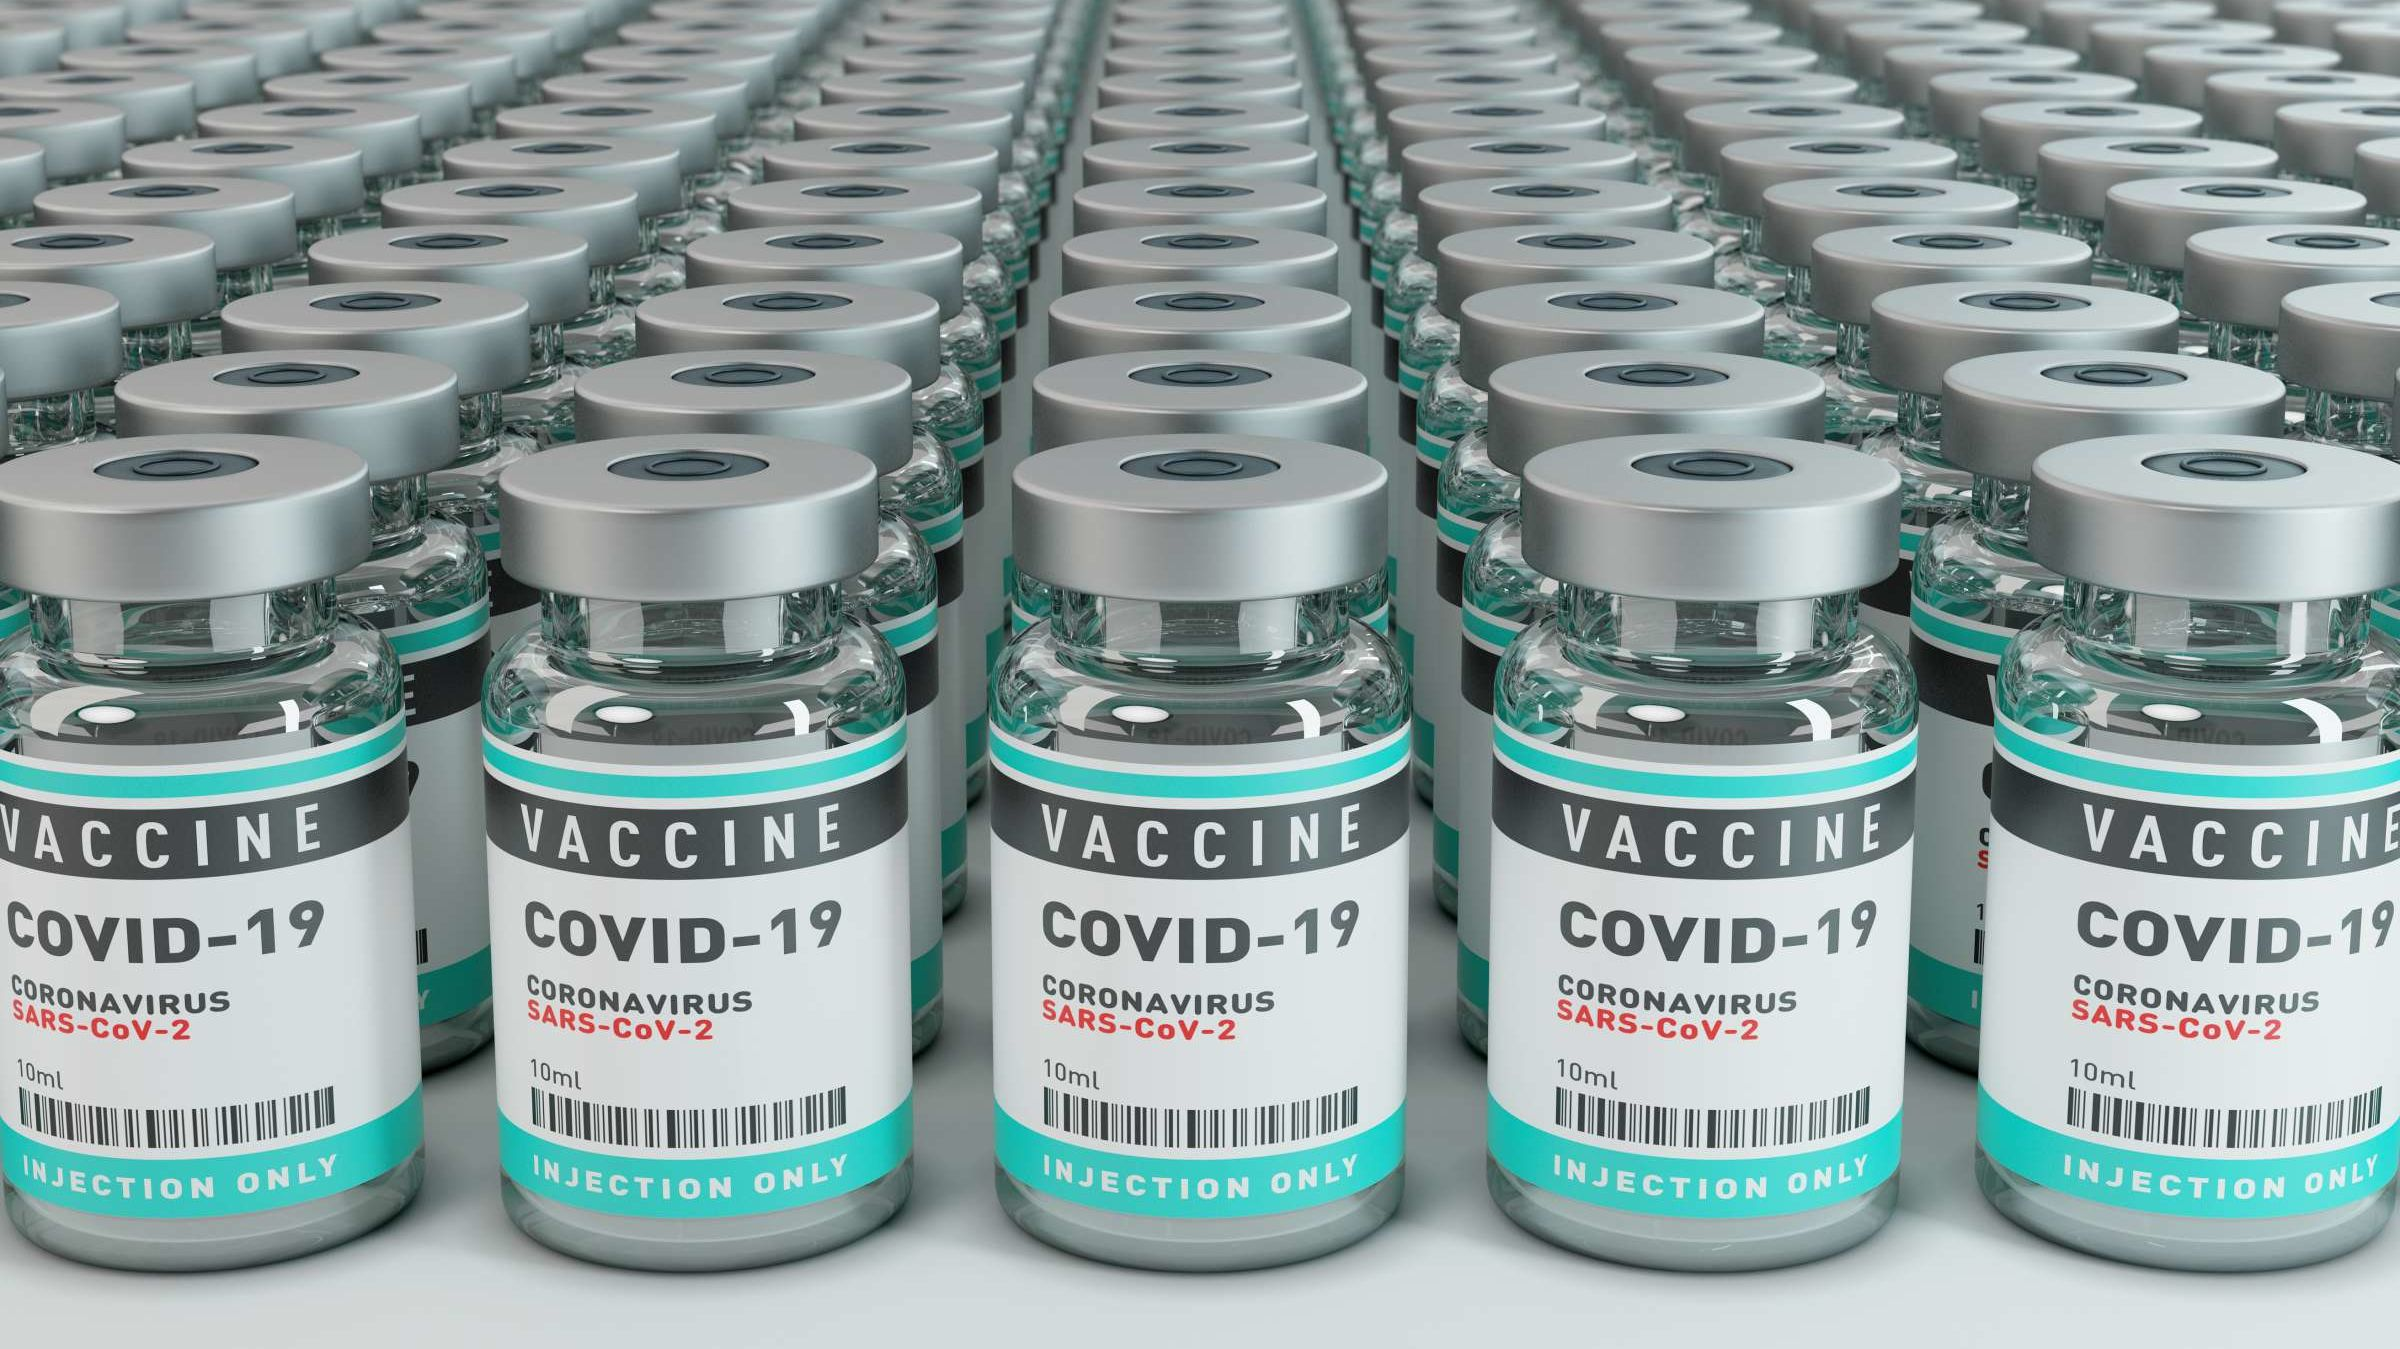 5 COVID-19 Vaccine Myths, Debunked